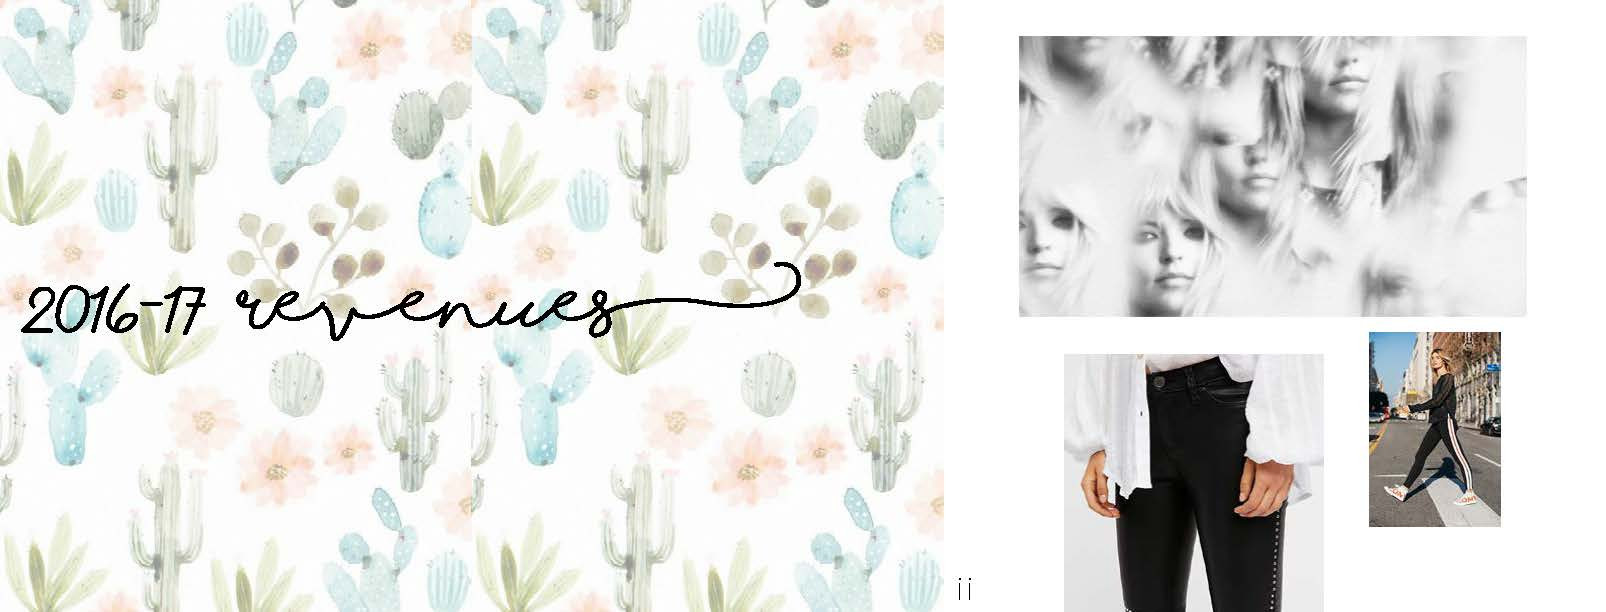 FREE PEOPLE BUYING PROJECT_Page_43.jpg